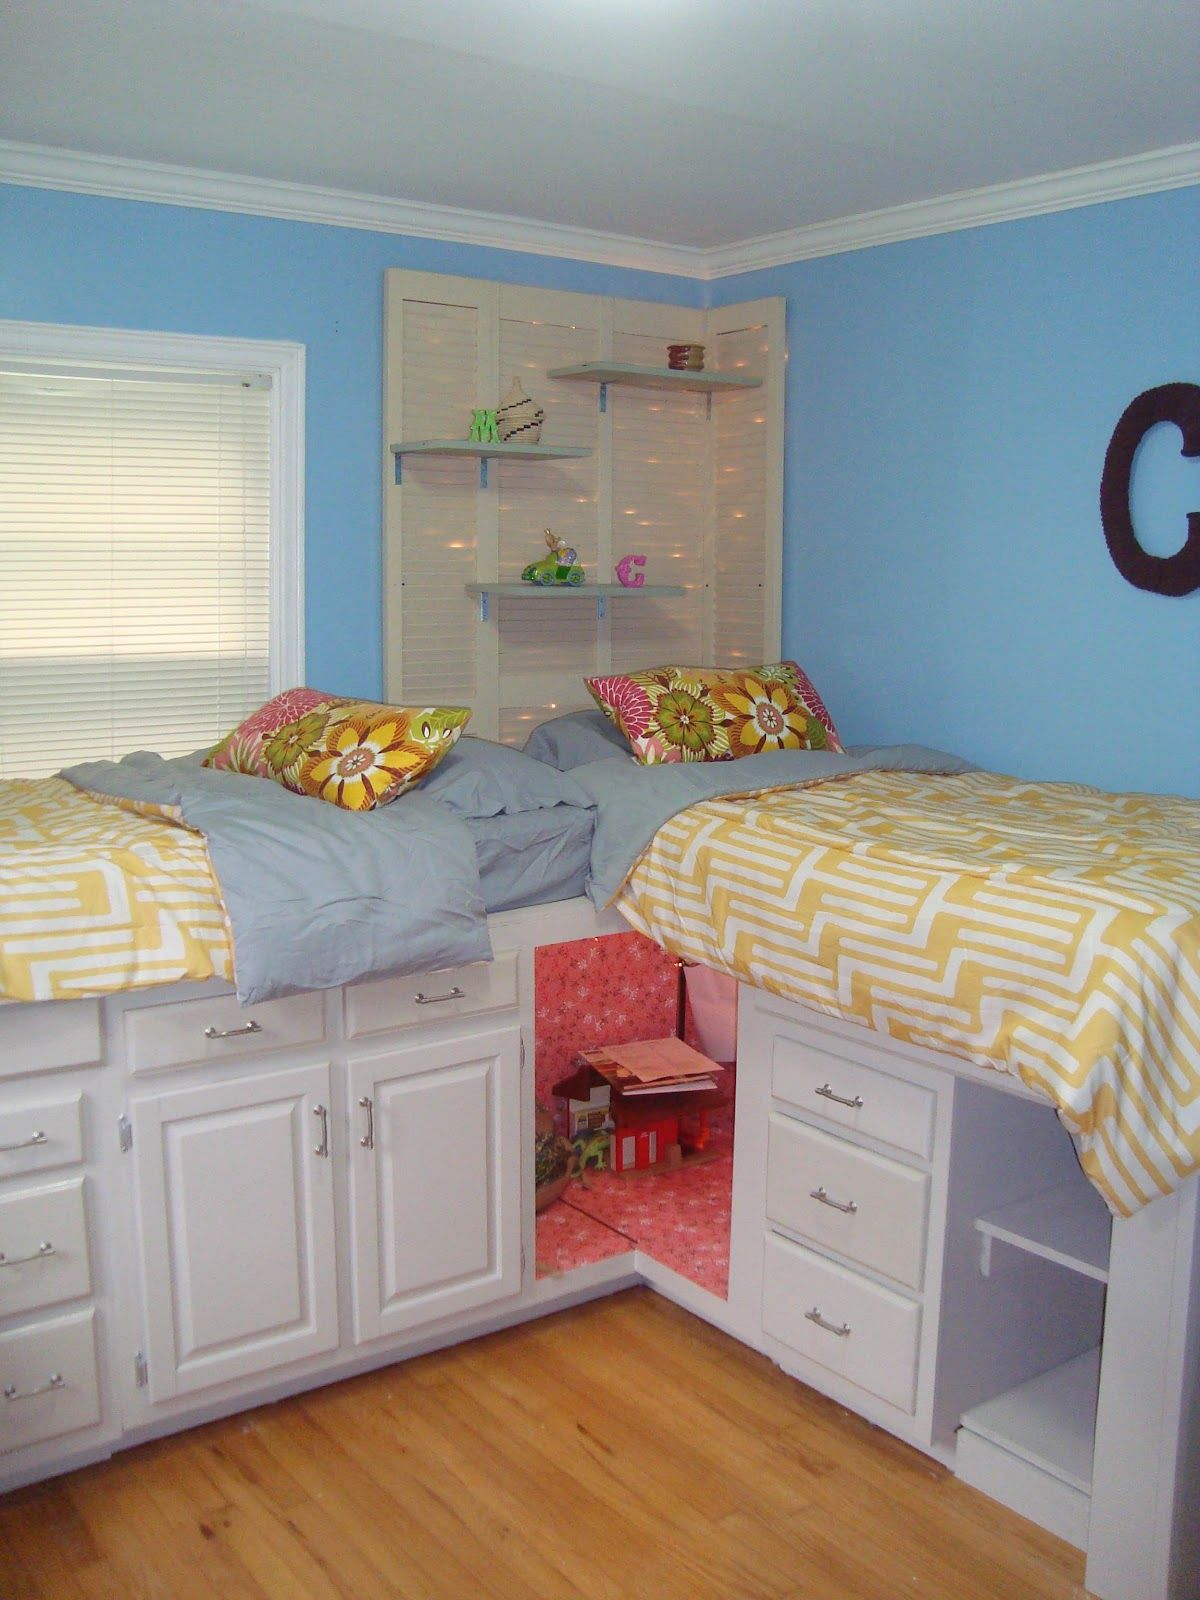 Corner twin loft bed  Kitchen cabinets as storage bed  Værelse pynt  Pinterest  Bed